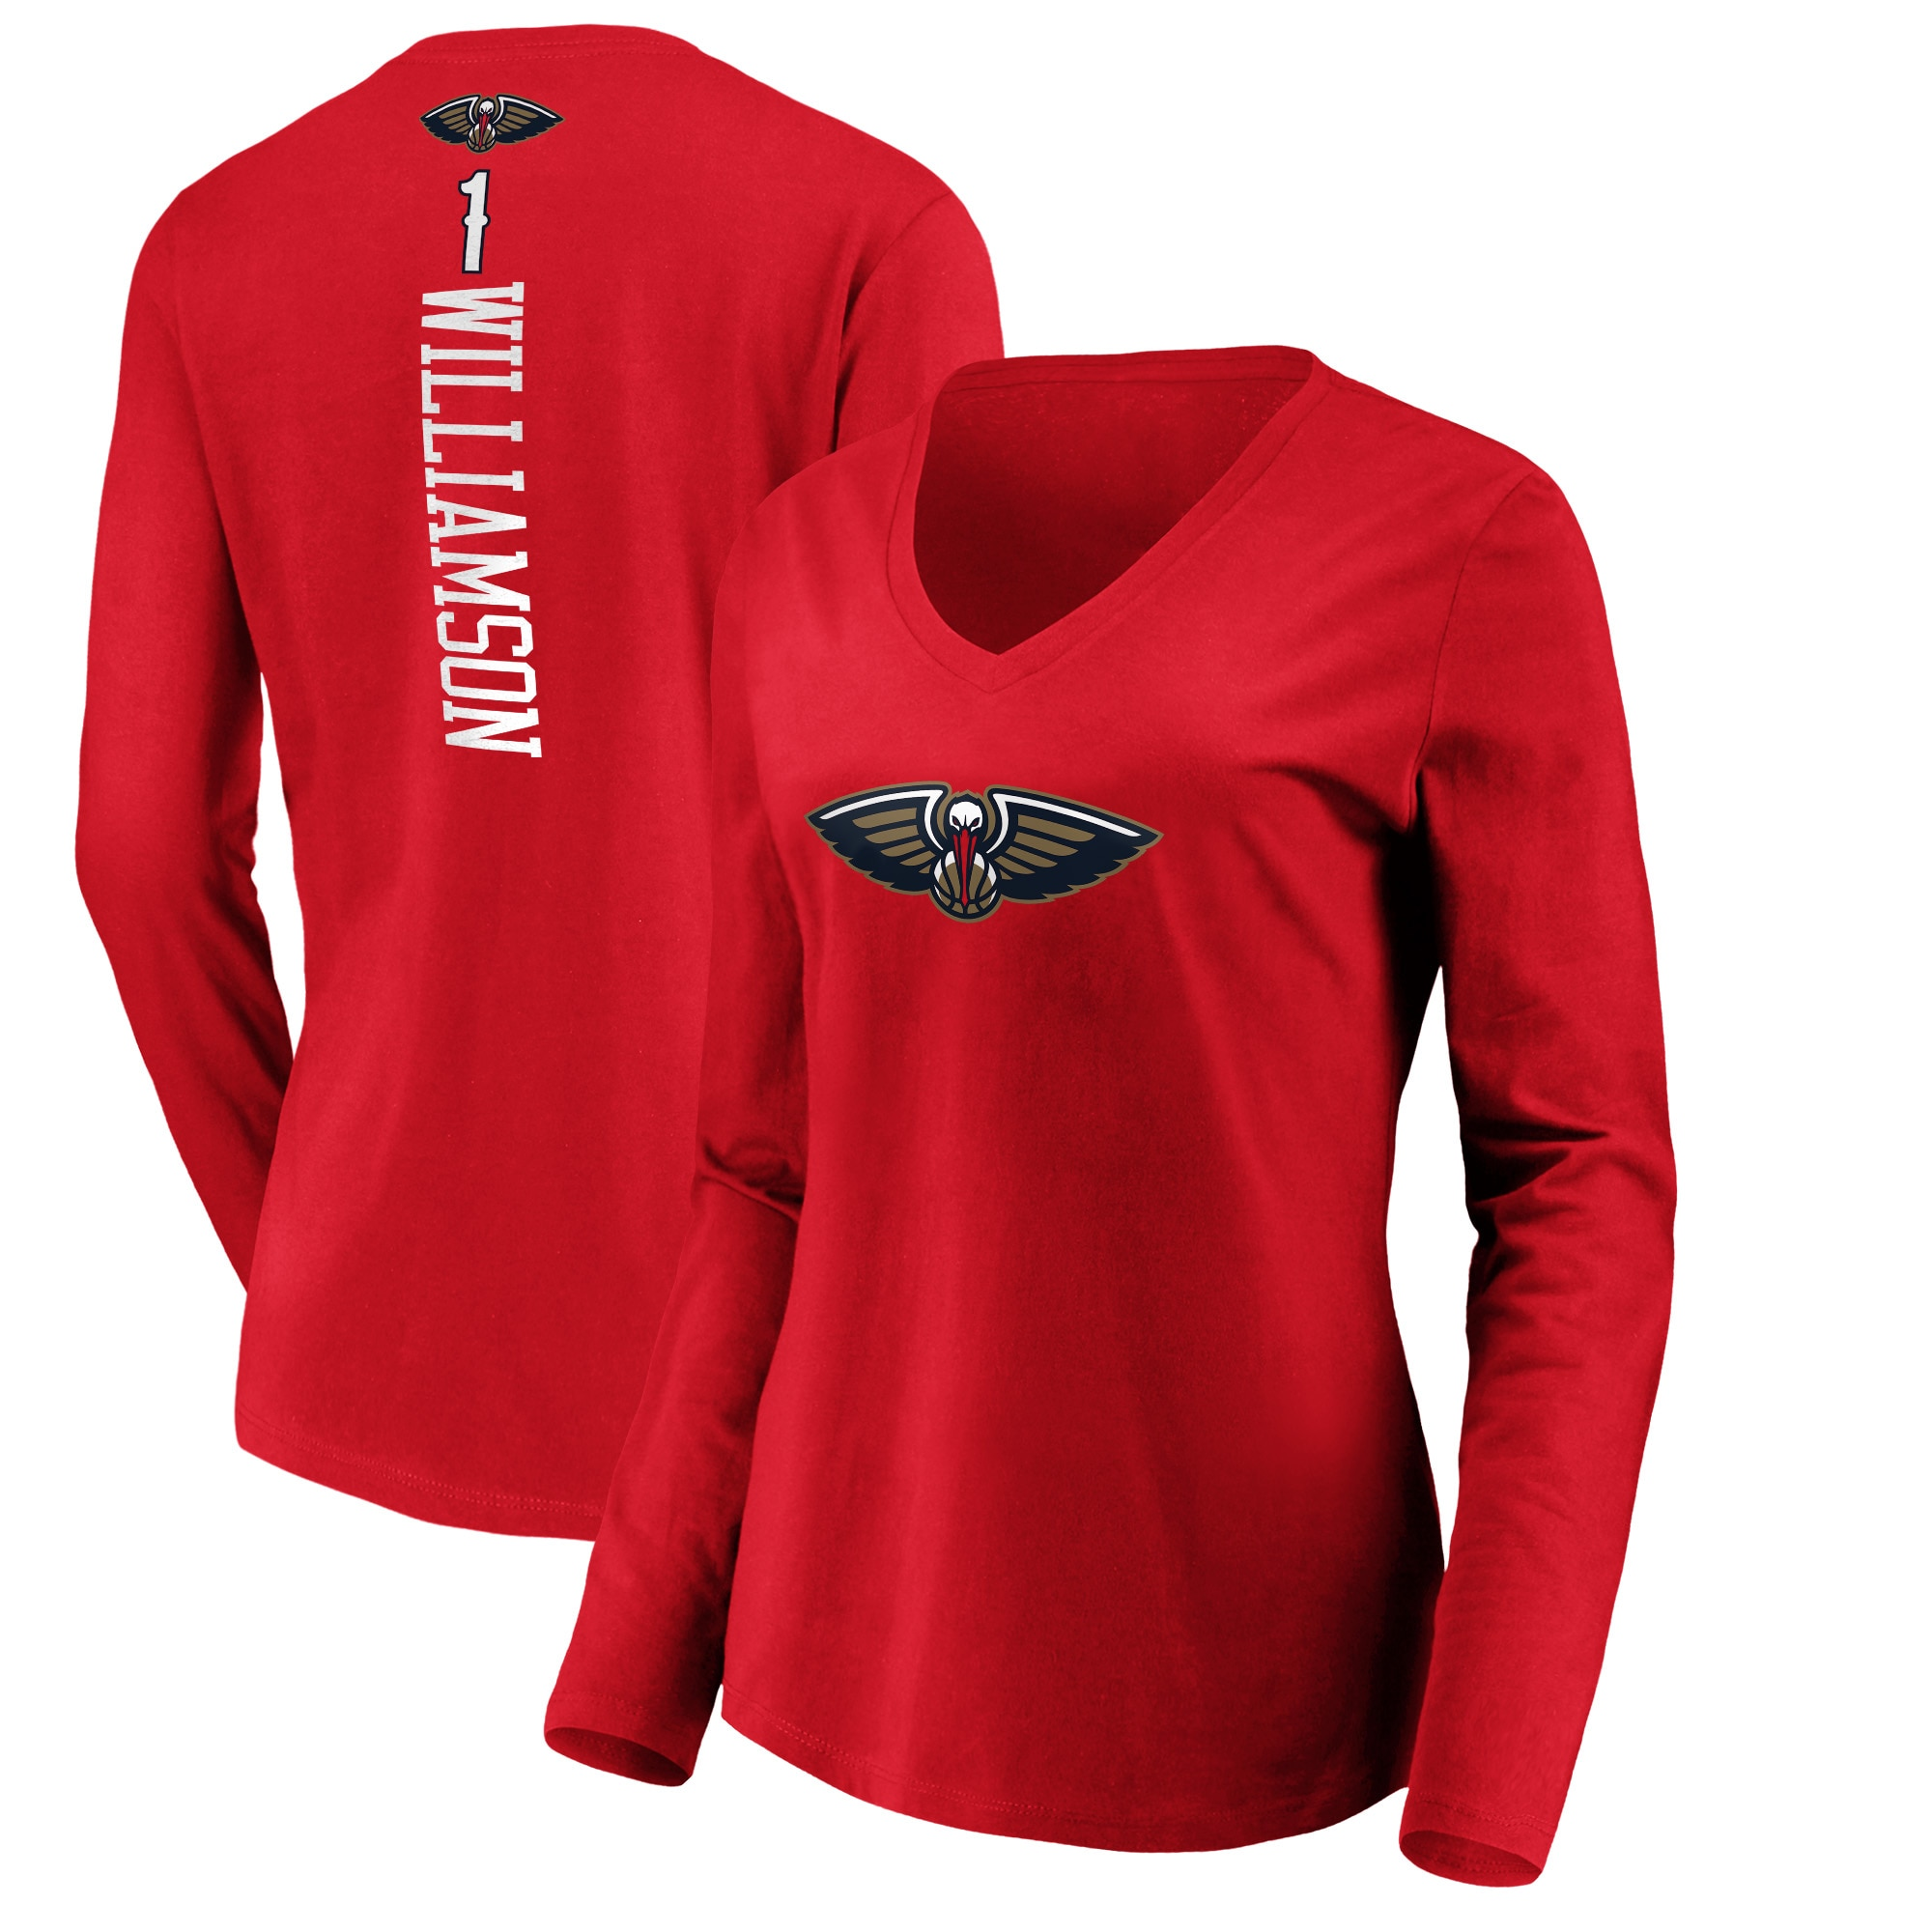 Zion Williamson New Orleans Pelicans Fanatics Branded Women's Playmaker Name & Number Long Sleeve V-Neck T-Shirt - Red